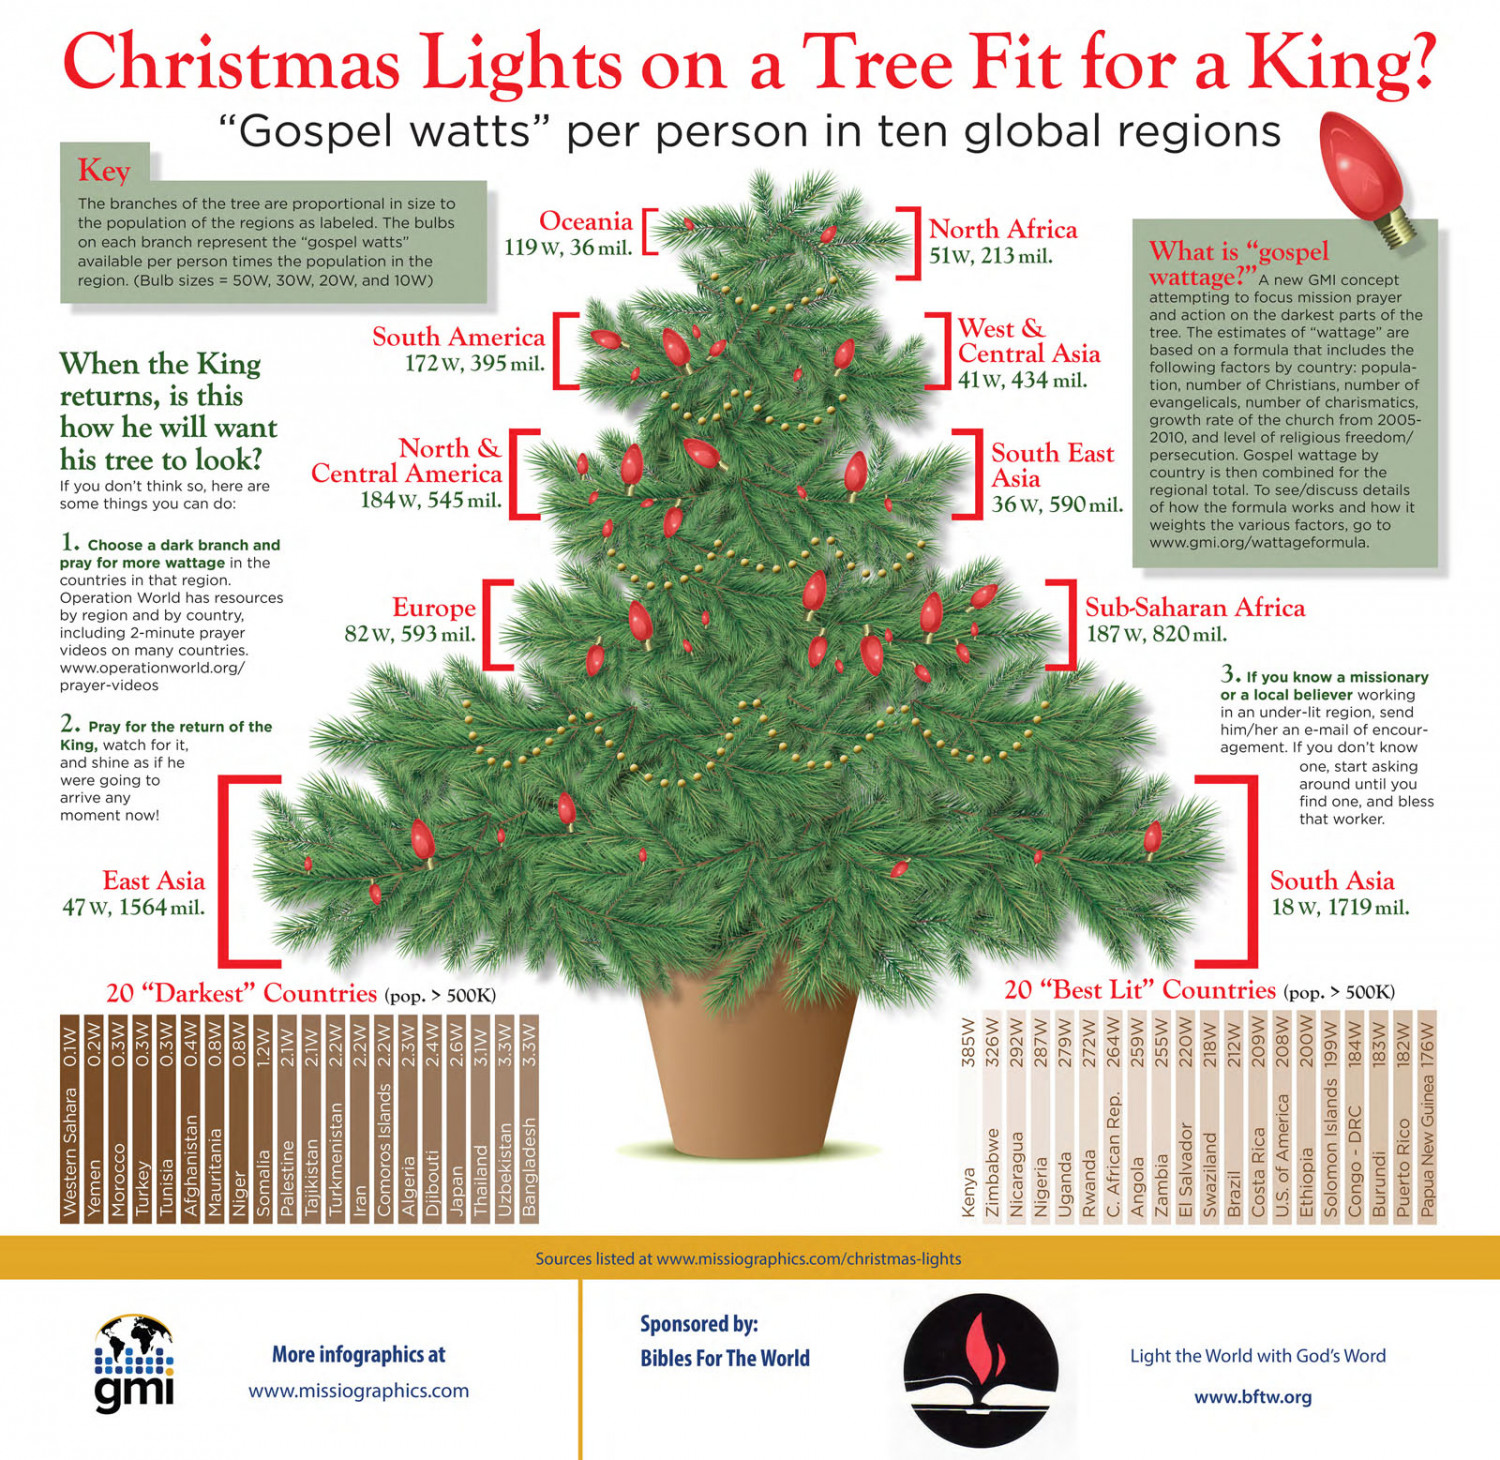 Christmas Lights on a Tree Fit for a King? Infographic